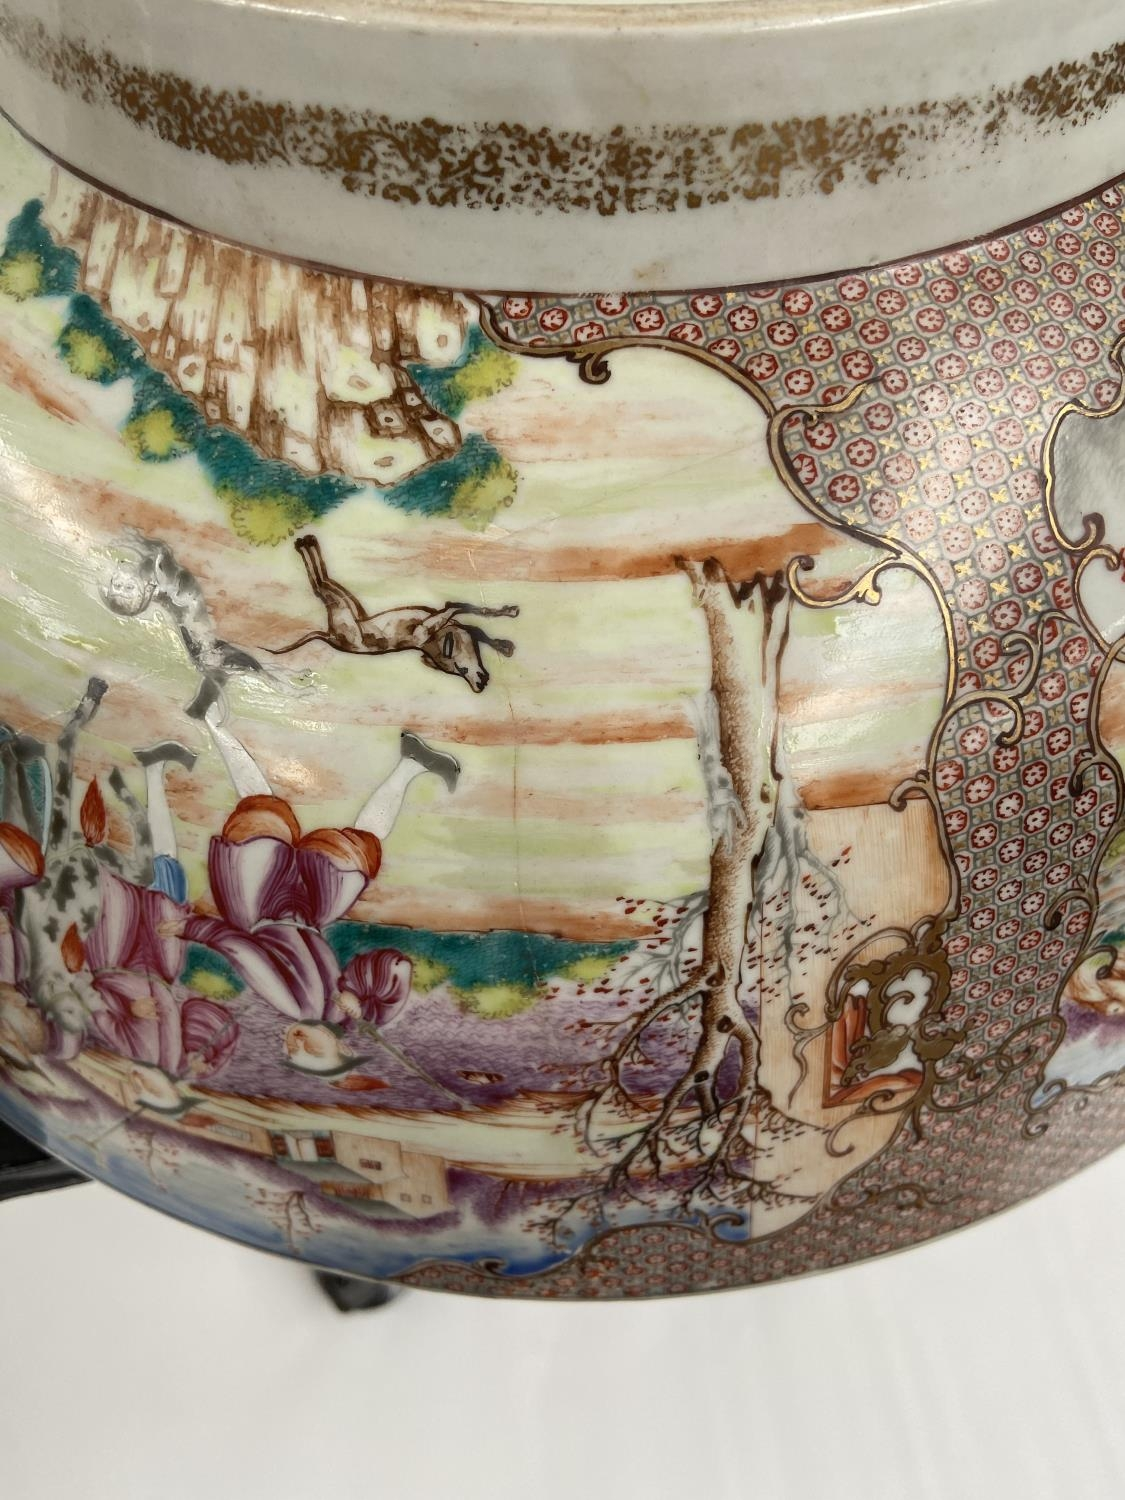 A LARGE 19TH CENTURY CHINESE HAND PAINTED BOWL. EXTERIOR DEPICTS CHINESE HUNTING SCENE PANELS. THE - Image 38 of 39